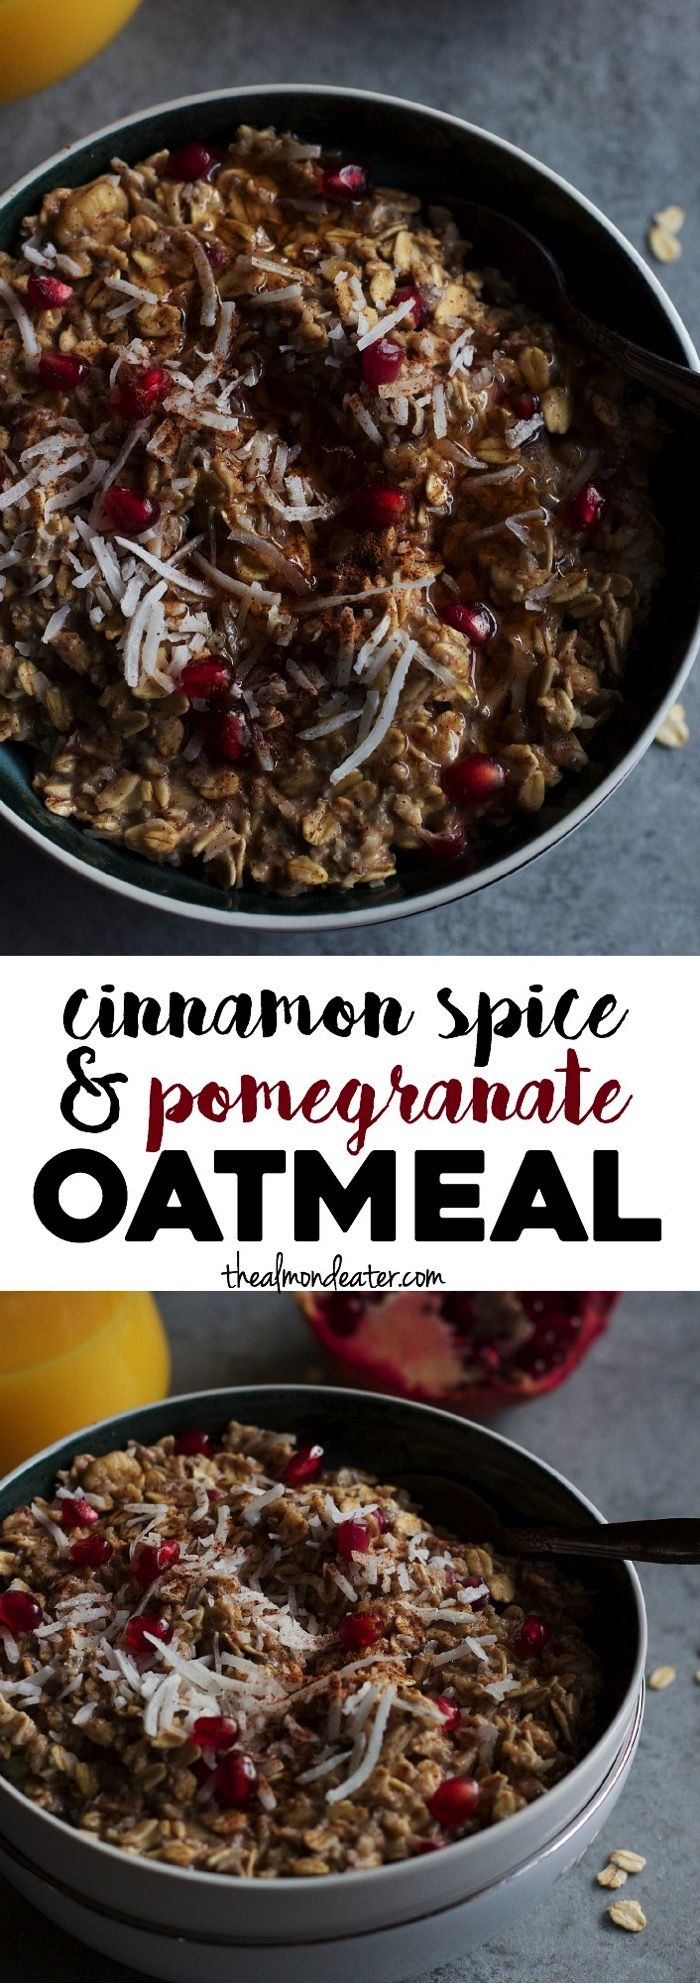 Warm oats filled with cinnamon and then topped with shredded coconut and pomegranate seeds. A sweet and healthy breakfast that's ready in just 5 minutes!